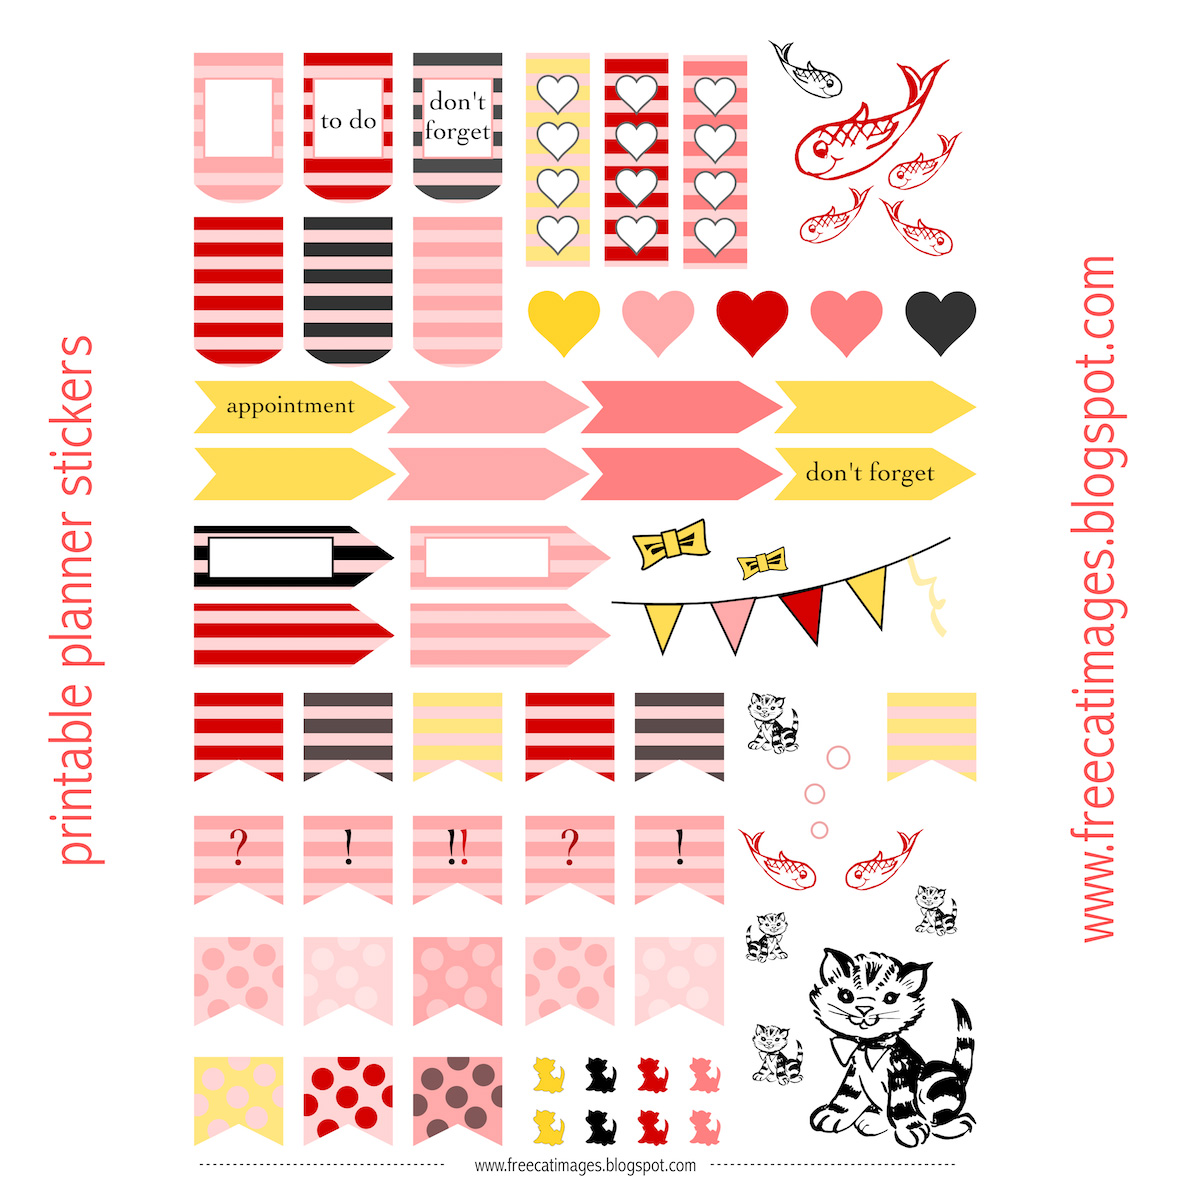 Free Cat Images: Free printable planner stickers - cats and fishes ... for Planner Stickers Template  299kxo